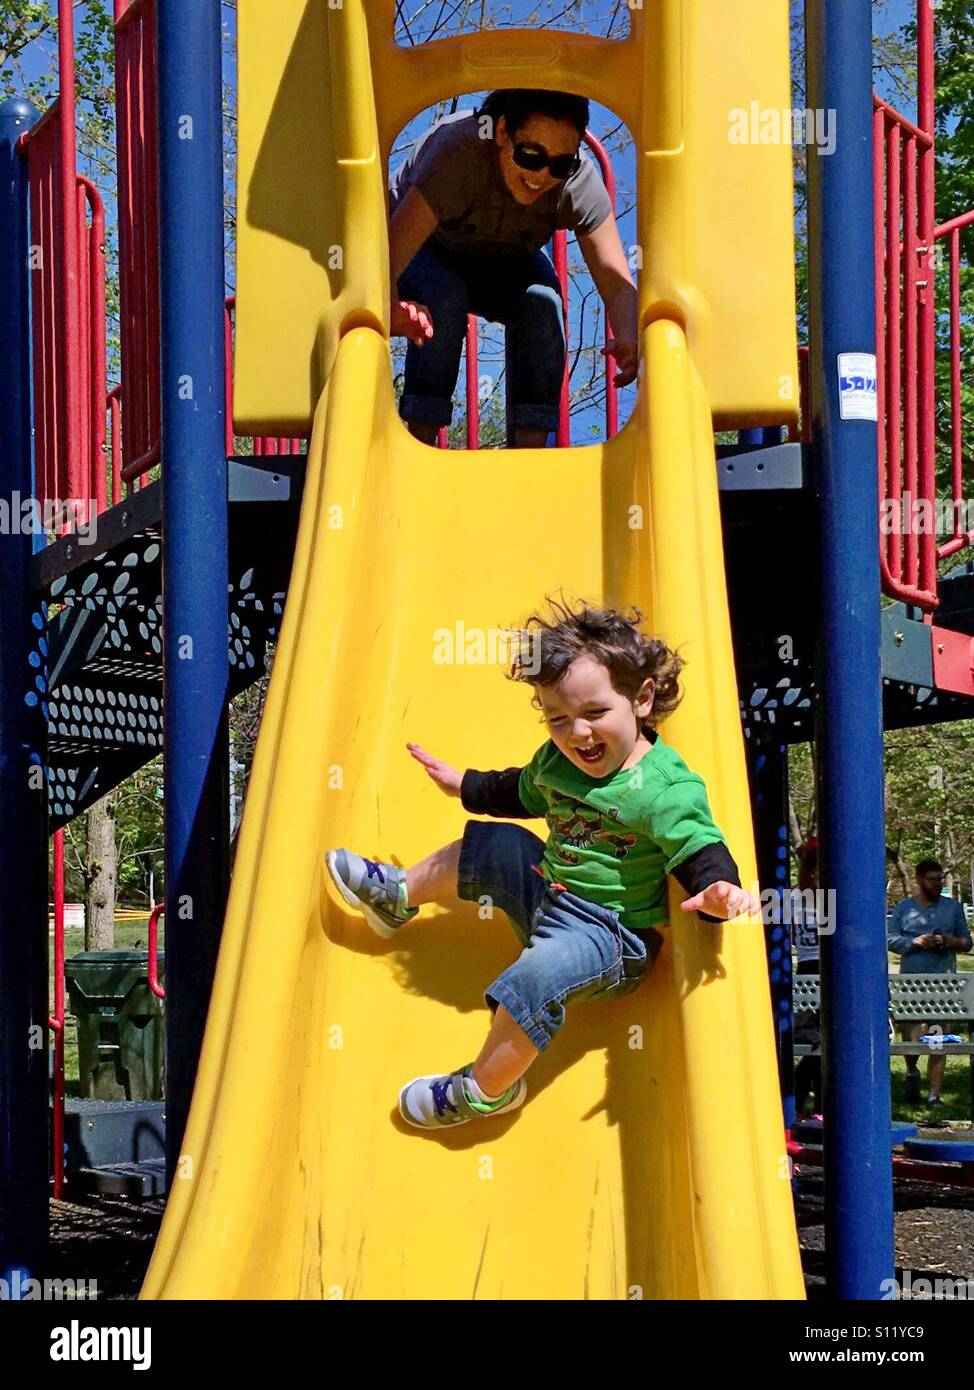 Mother and child having fun at the park - Stock Image